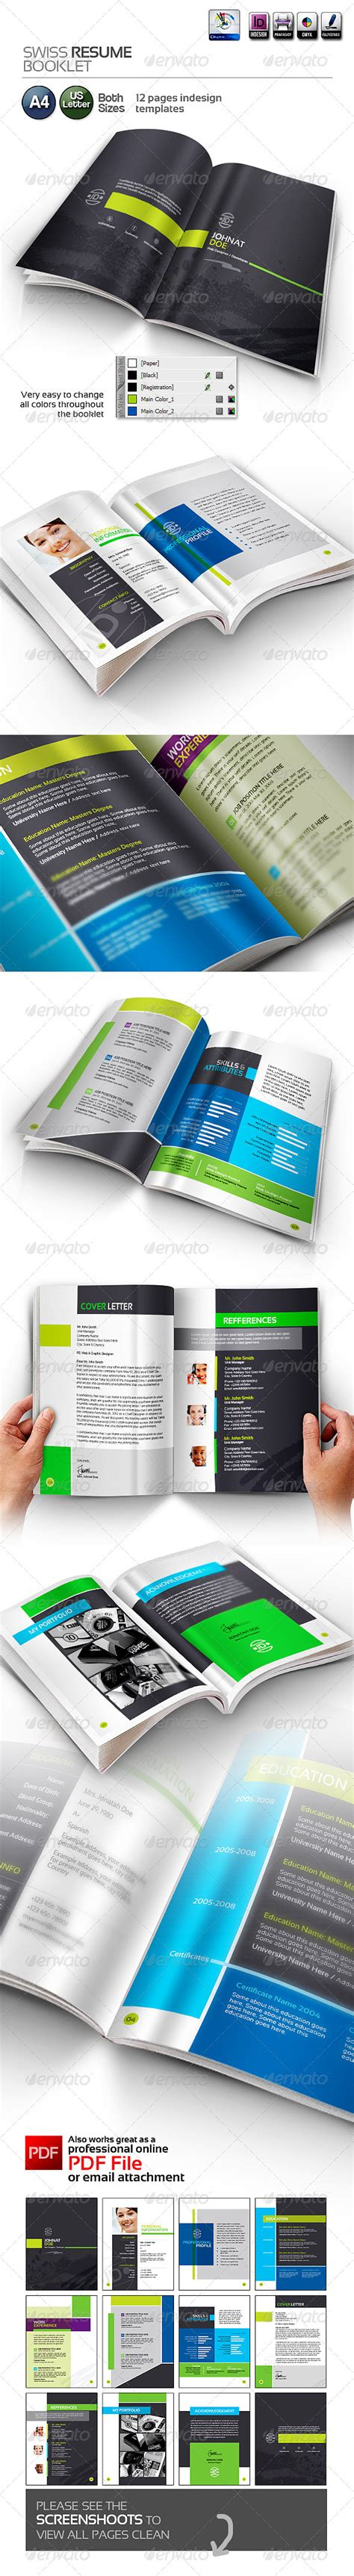 print templates swiss resume booklet graphicriver